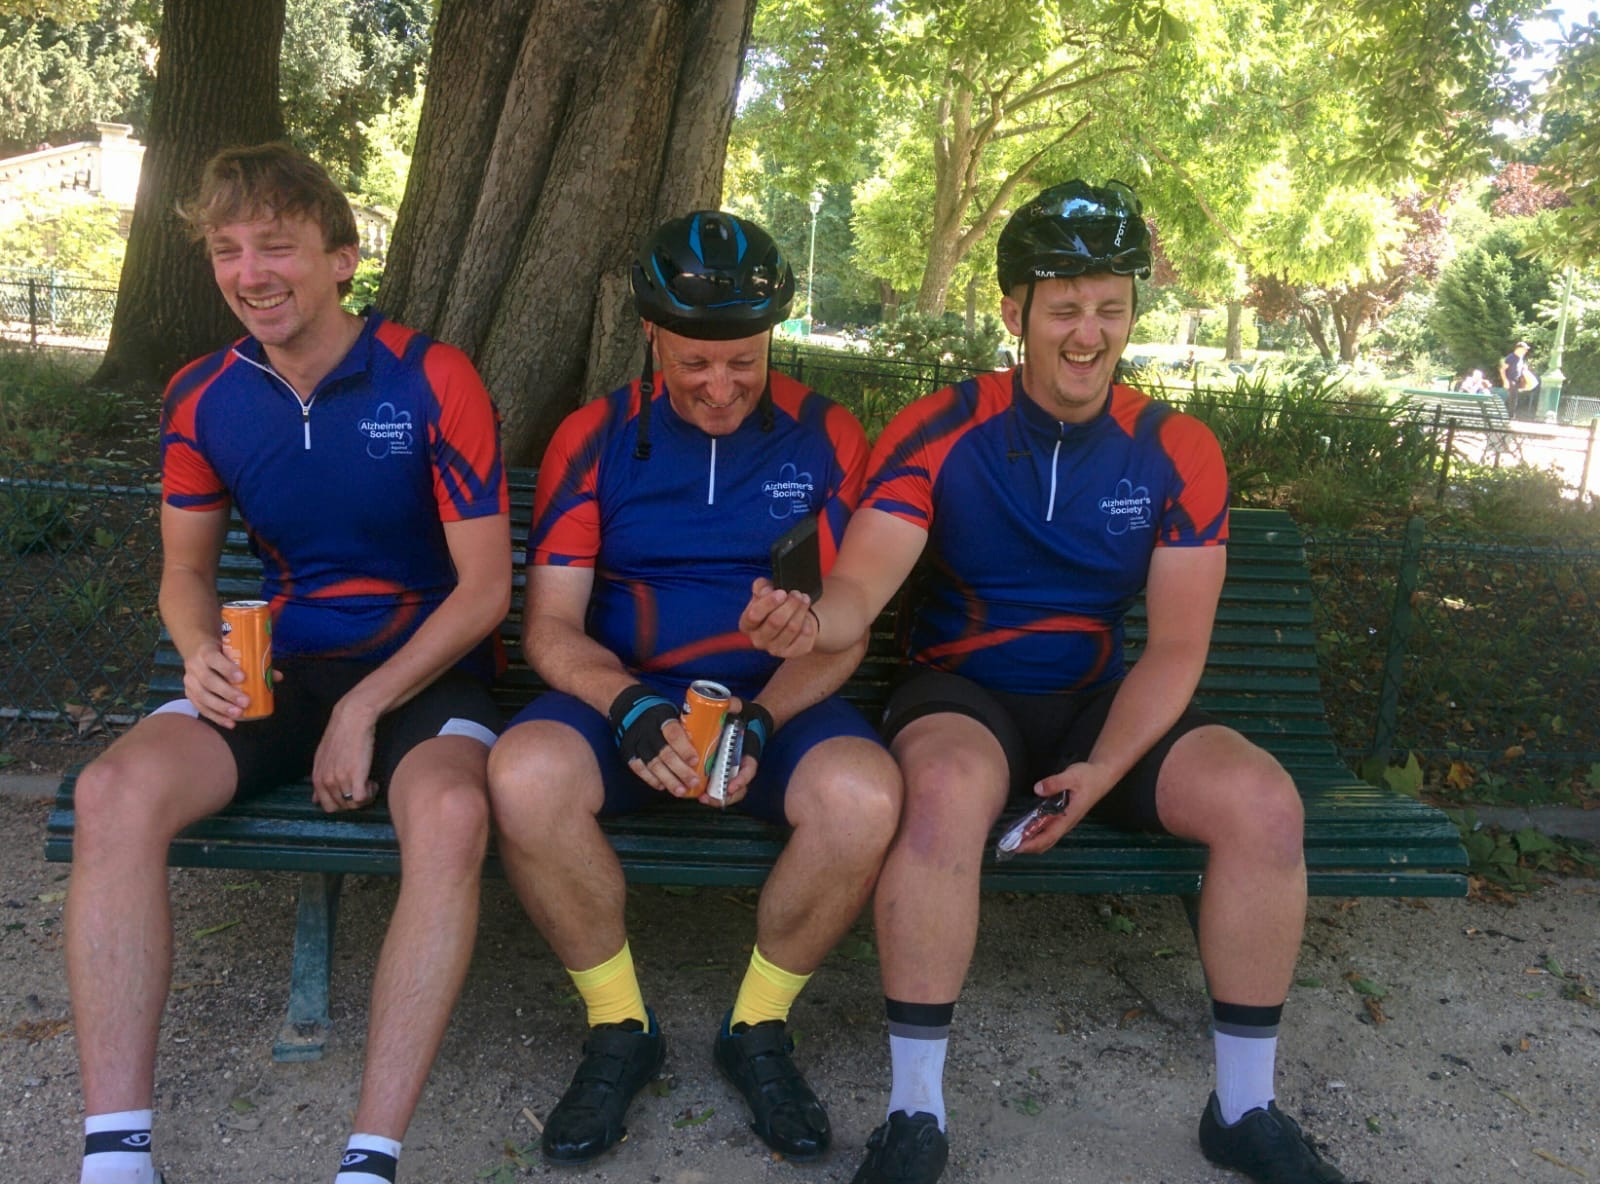 London to Paris Cycle Challenge 2018 - Fits of laughter